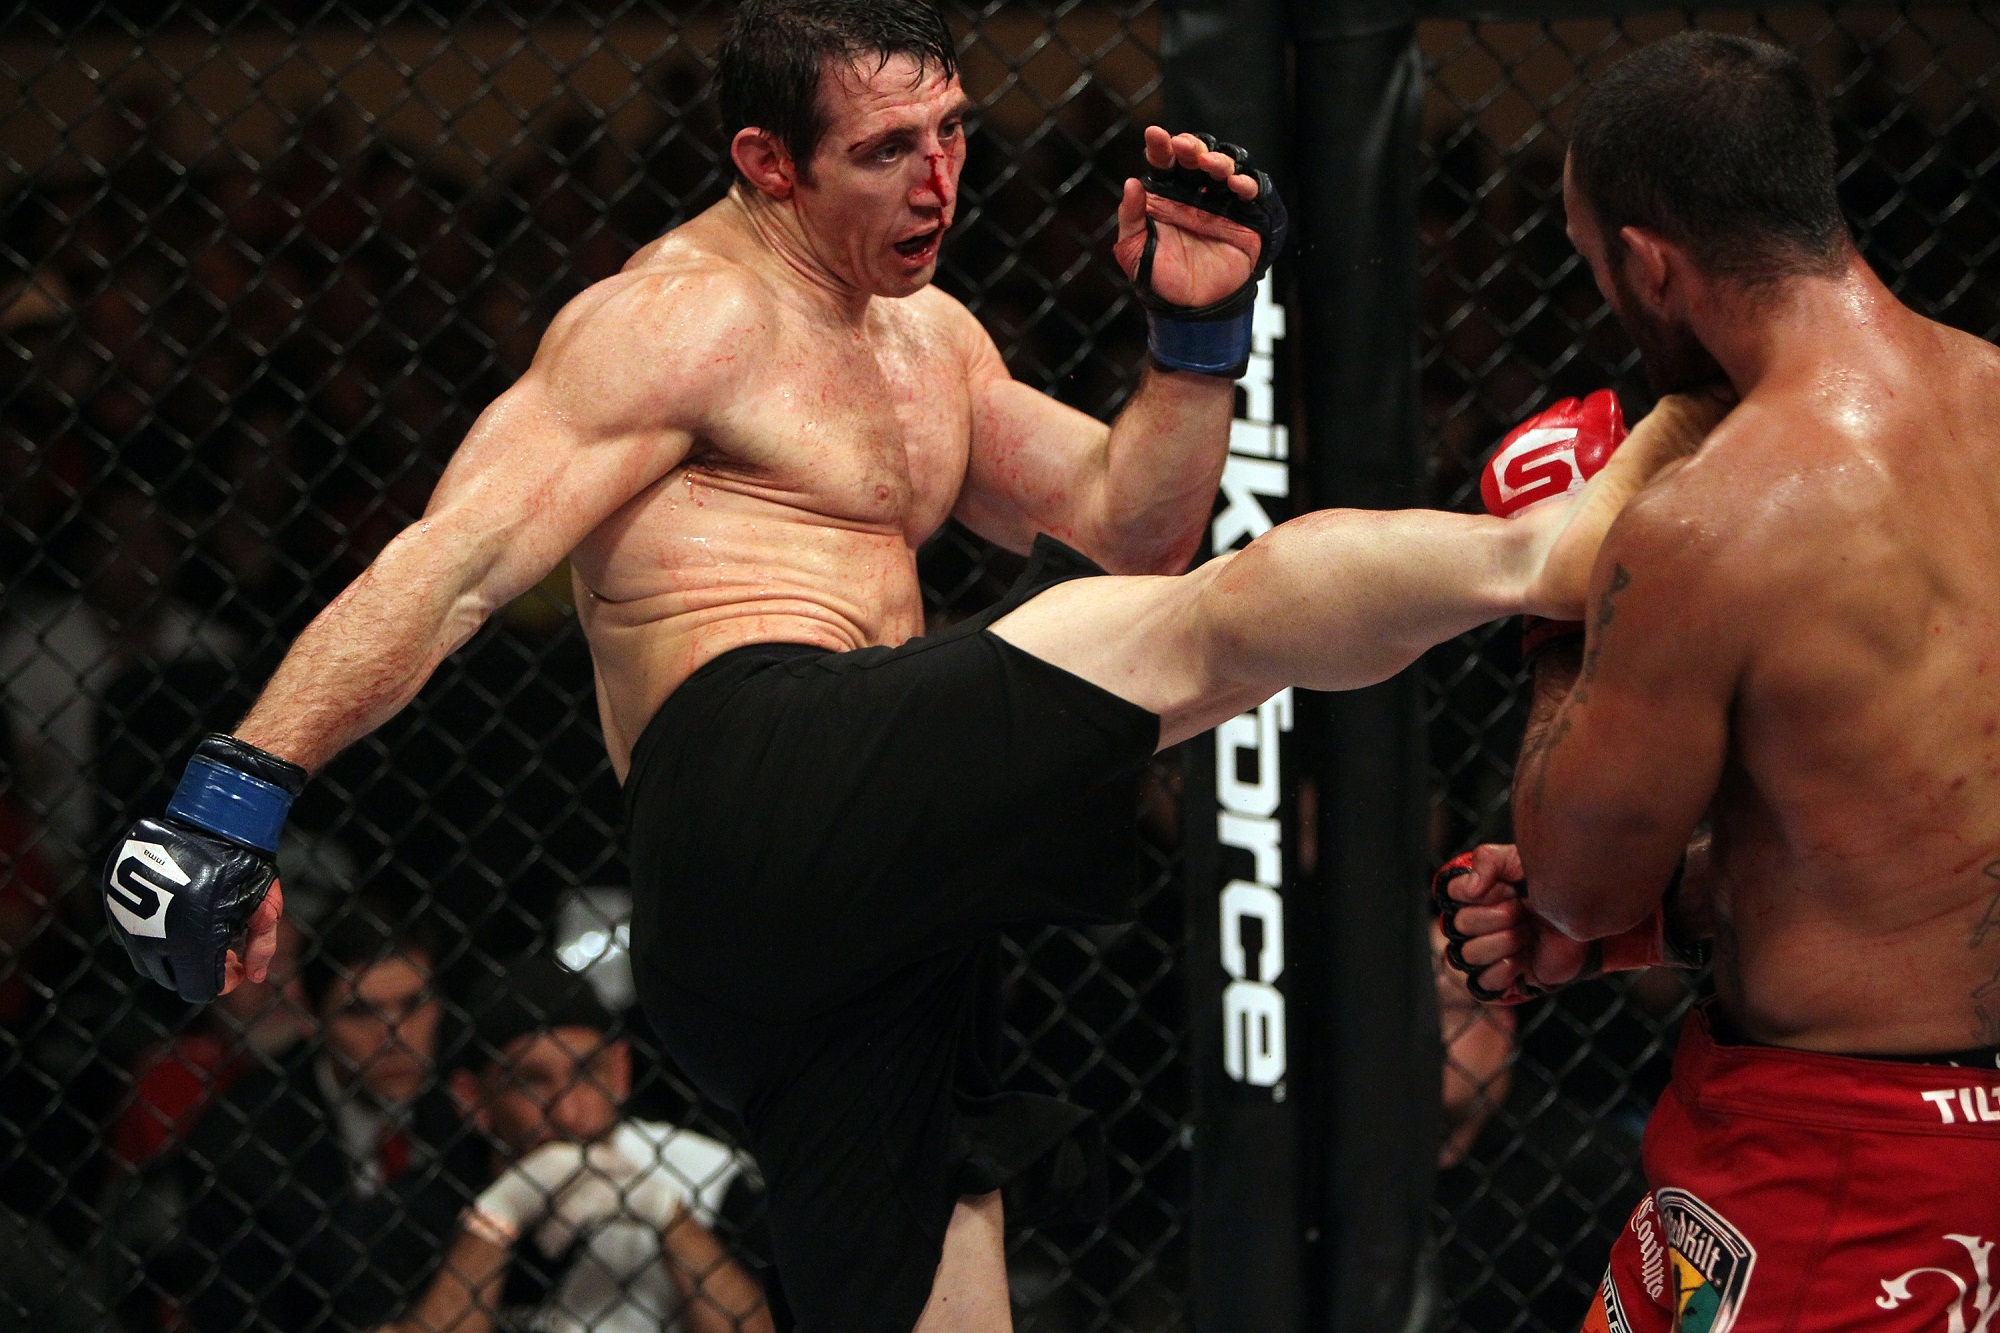 Strikeforce middleweight contender Tim Kennedy